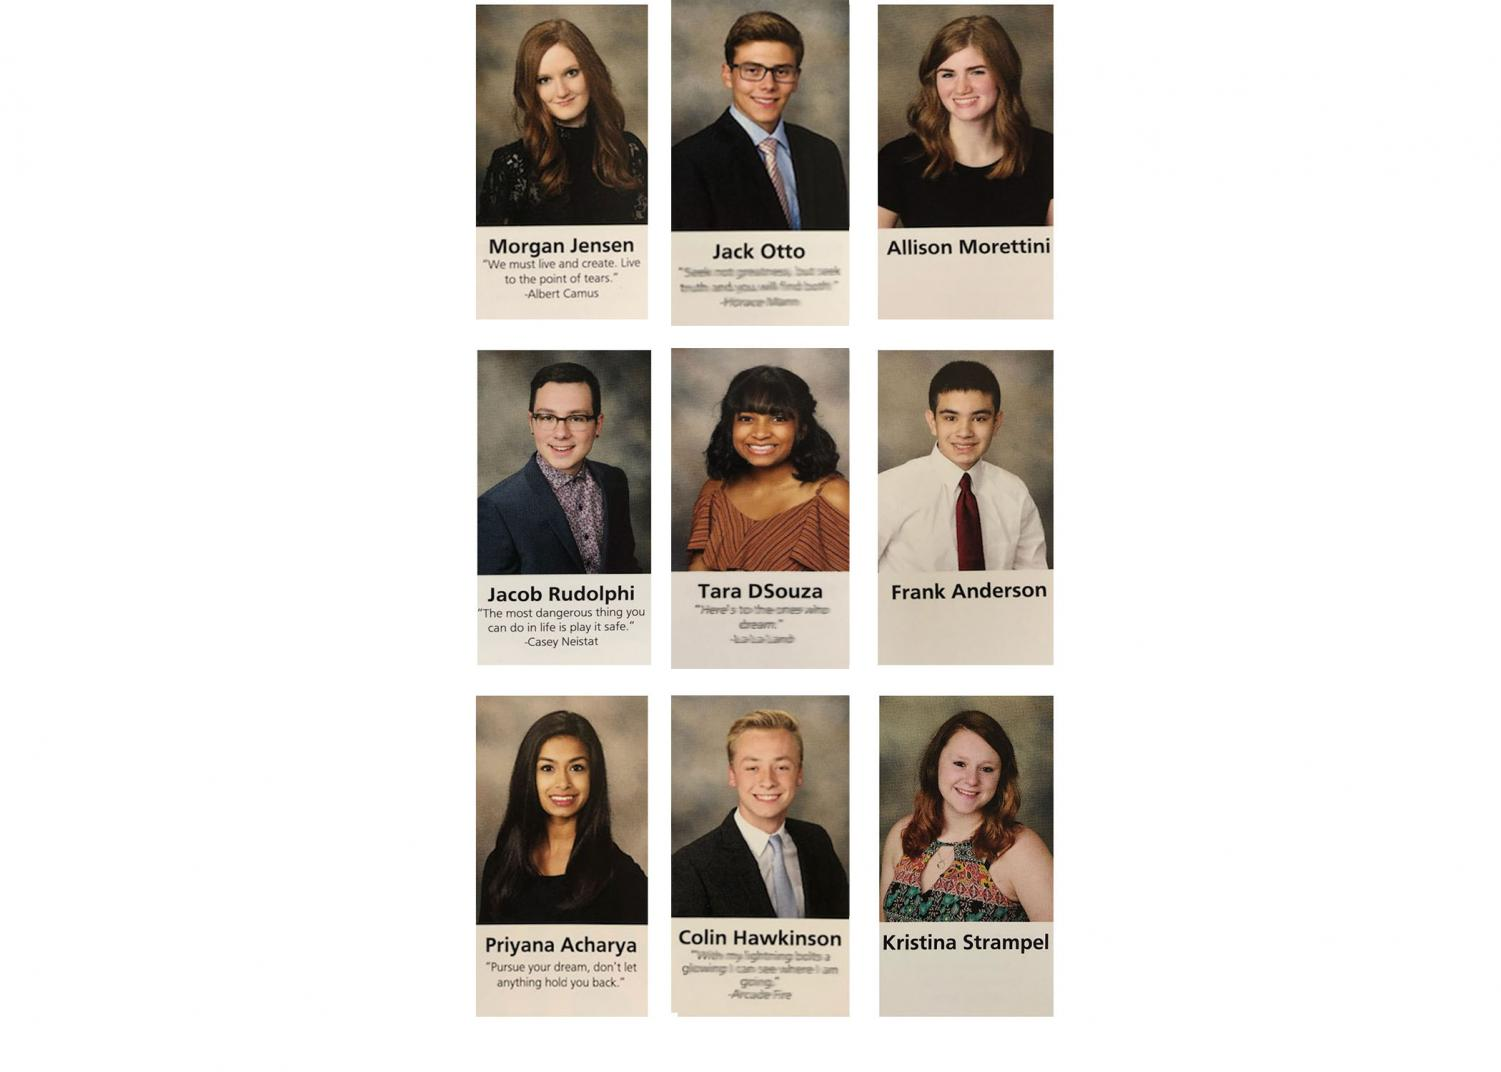 Due to the controversy caused by previous inappropriate yearbook quotes, Dr. Koulentes and the yearbook staff have made the decision to no longer include senior quotes.